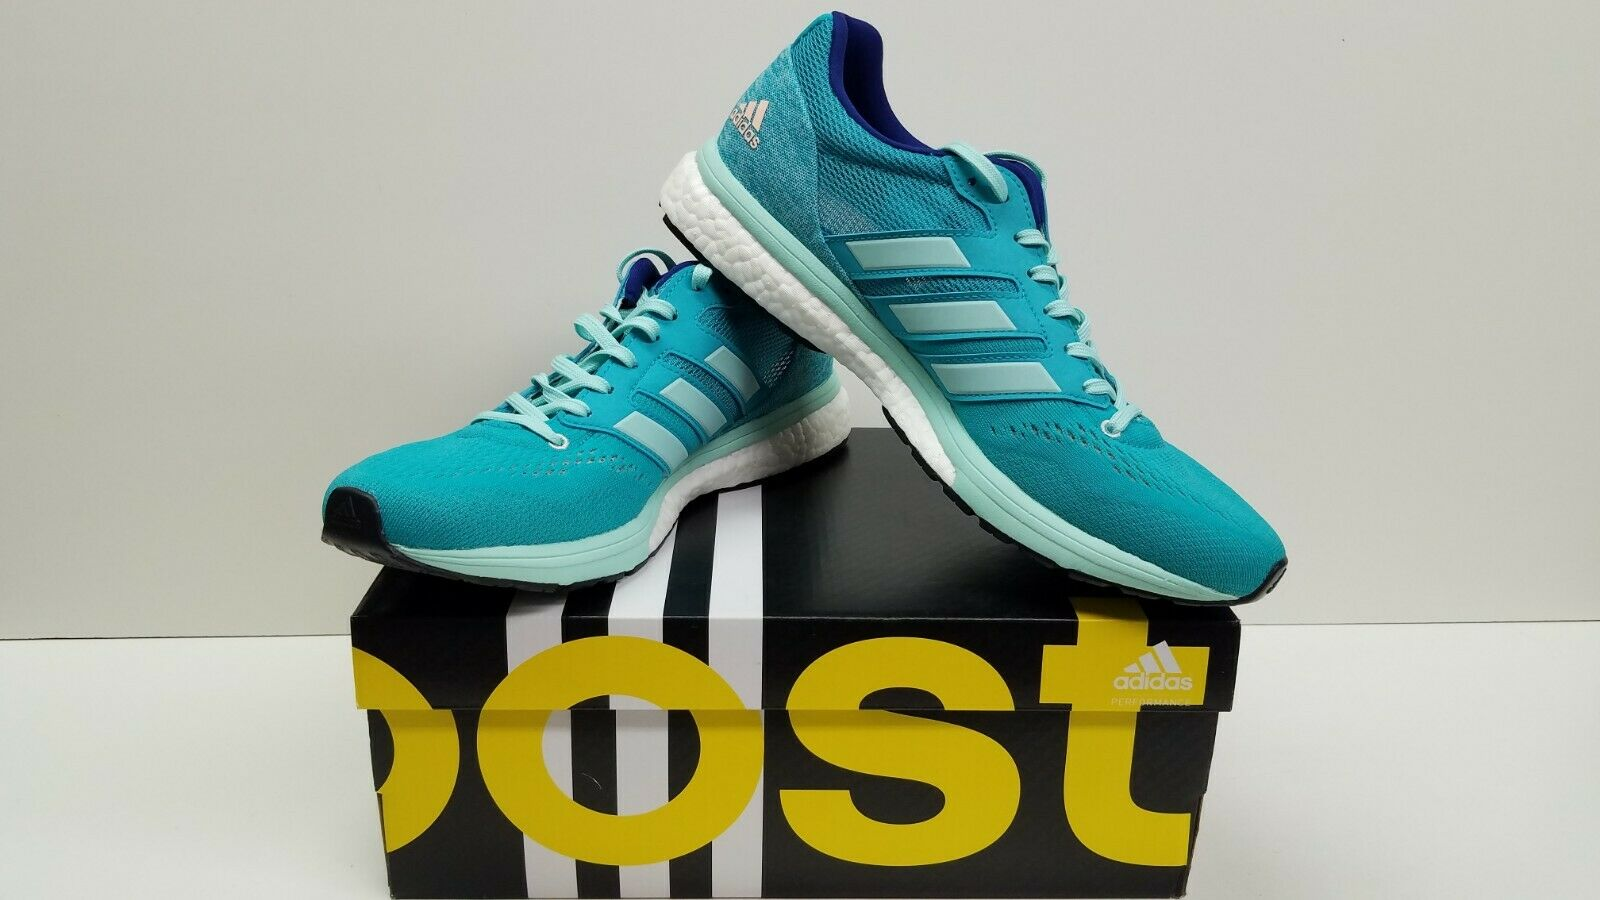 Adidas adizero Boston 7  Women's Running shoes Size 10 NEW  save 60% discount and fast shipping worldwide